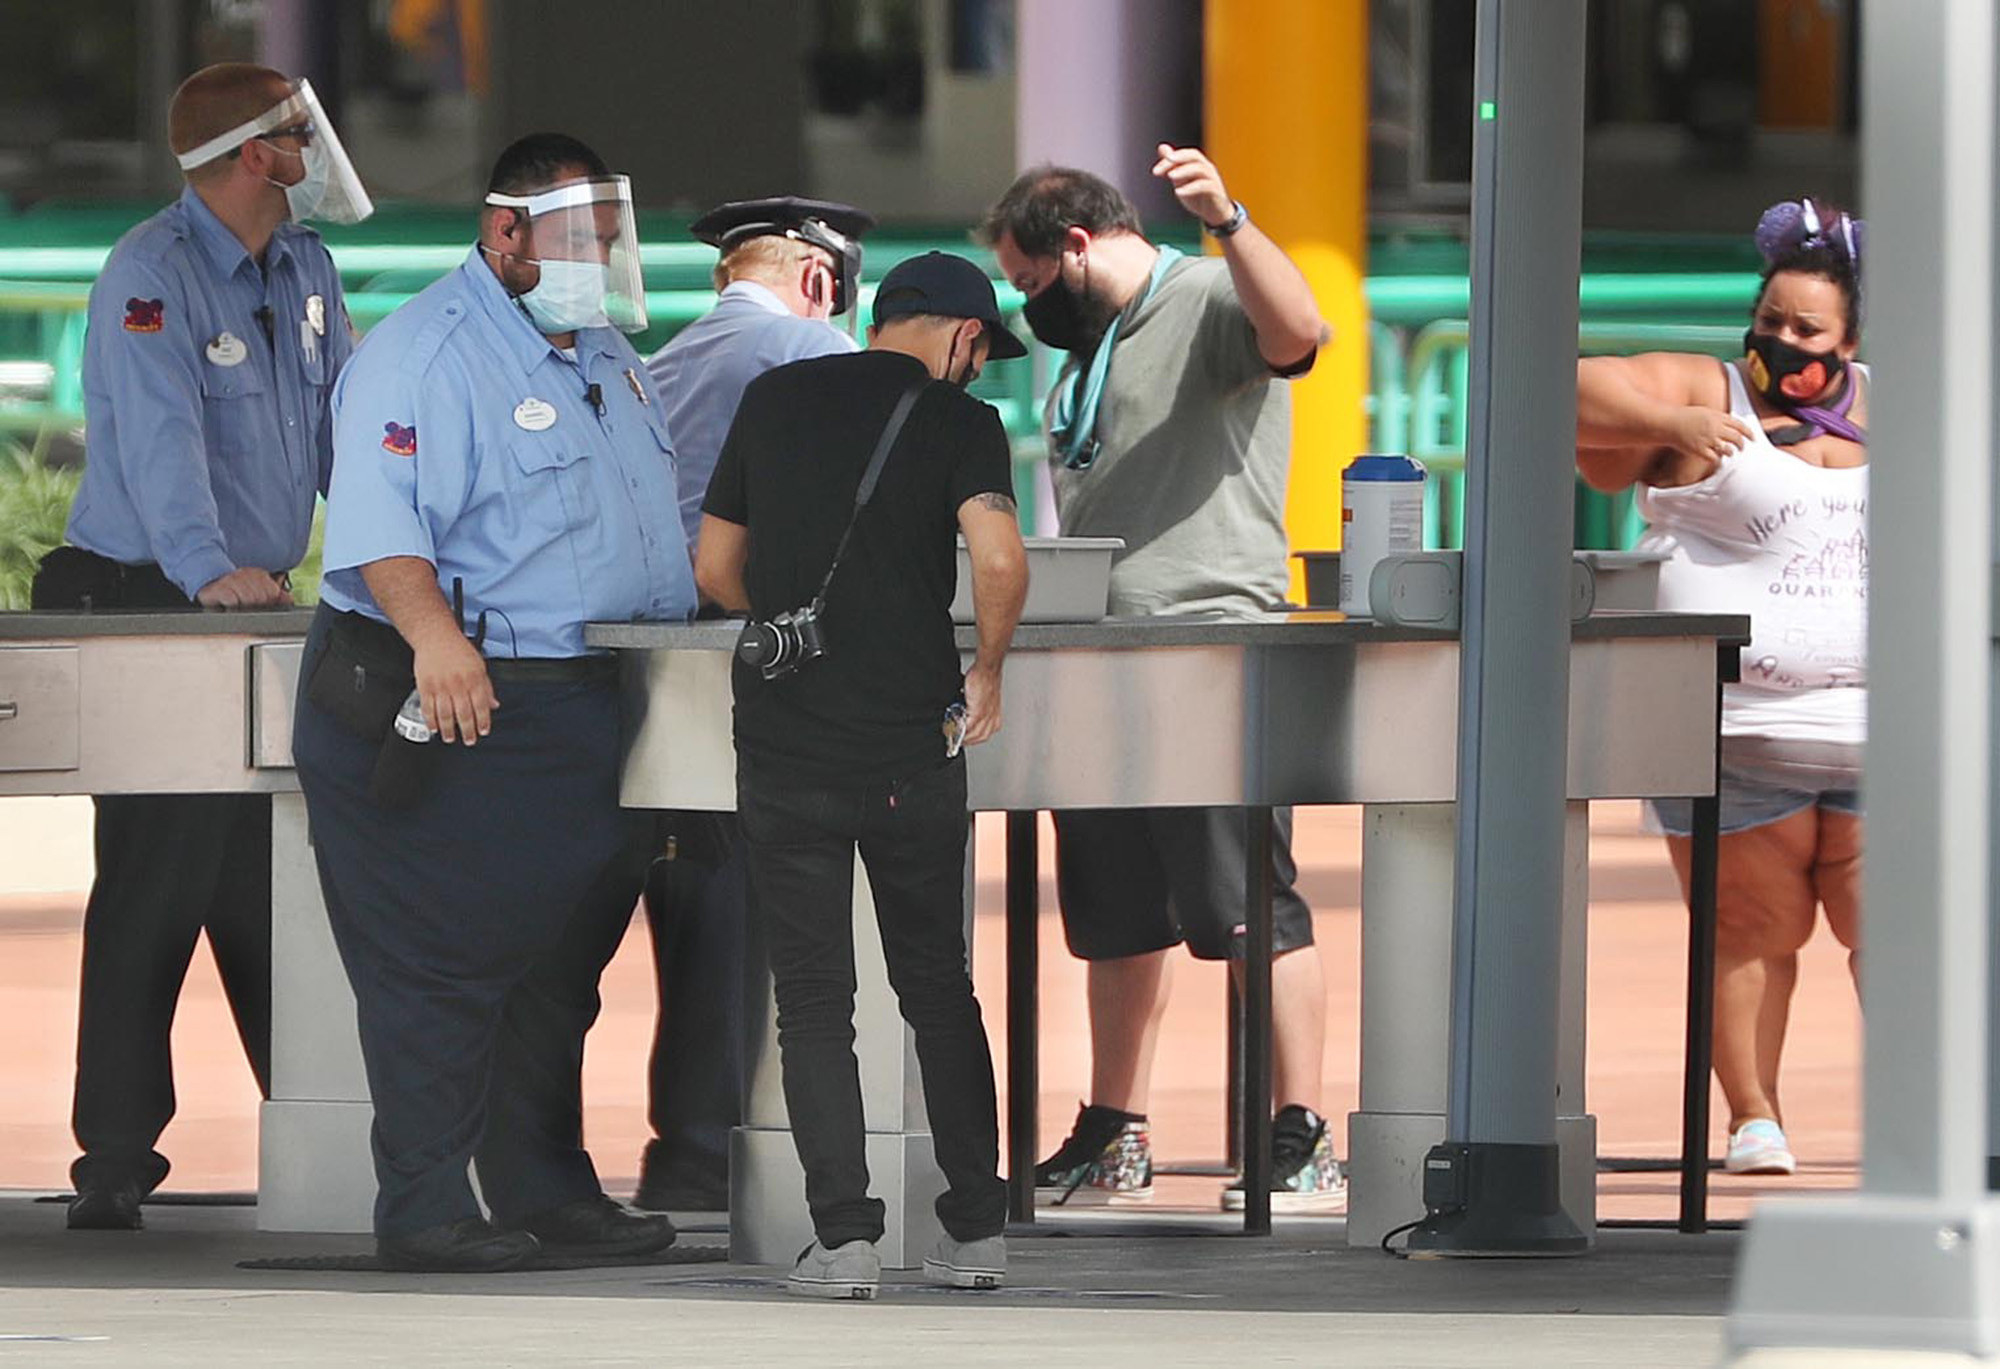 Security guards in face shield check visitors' bags